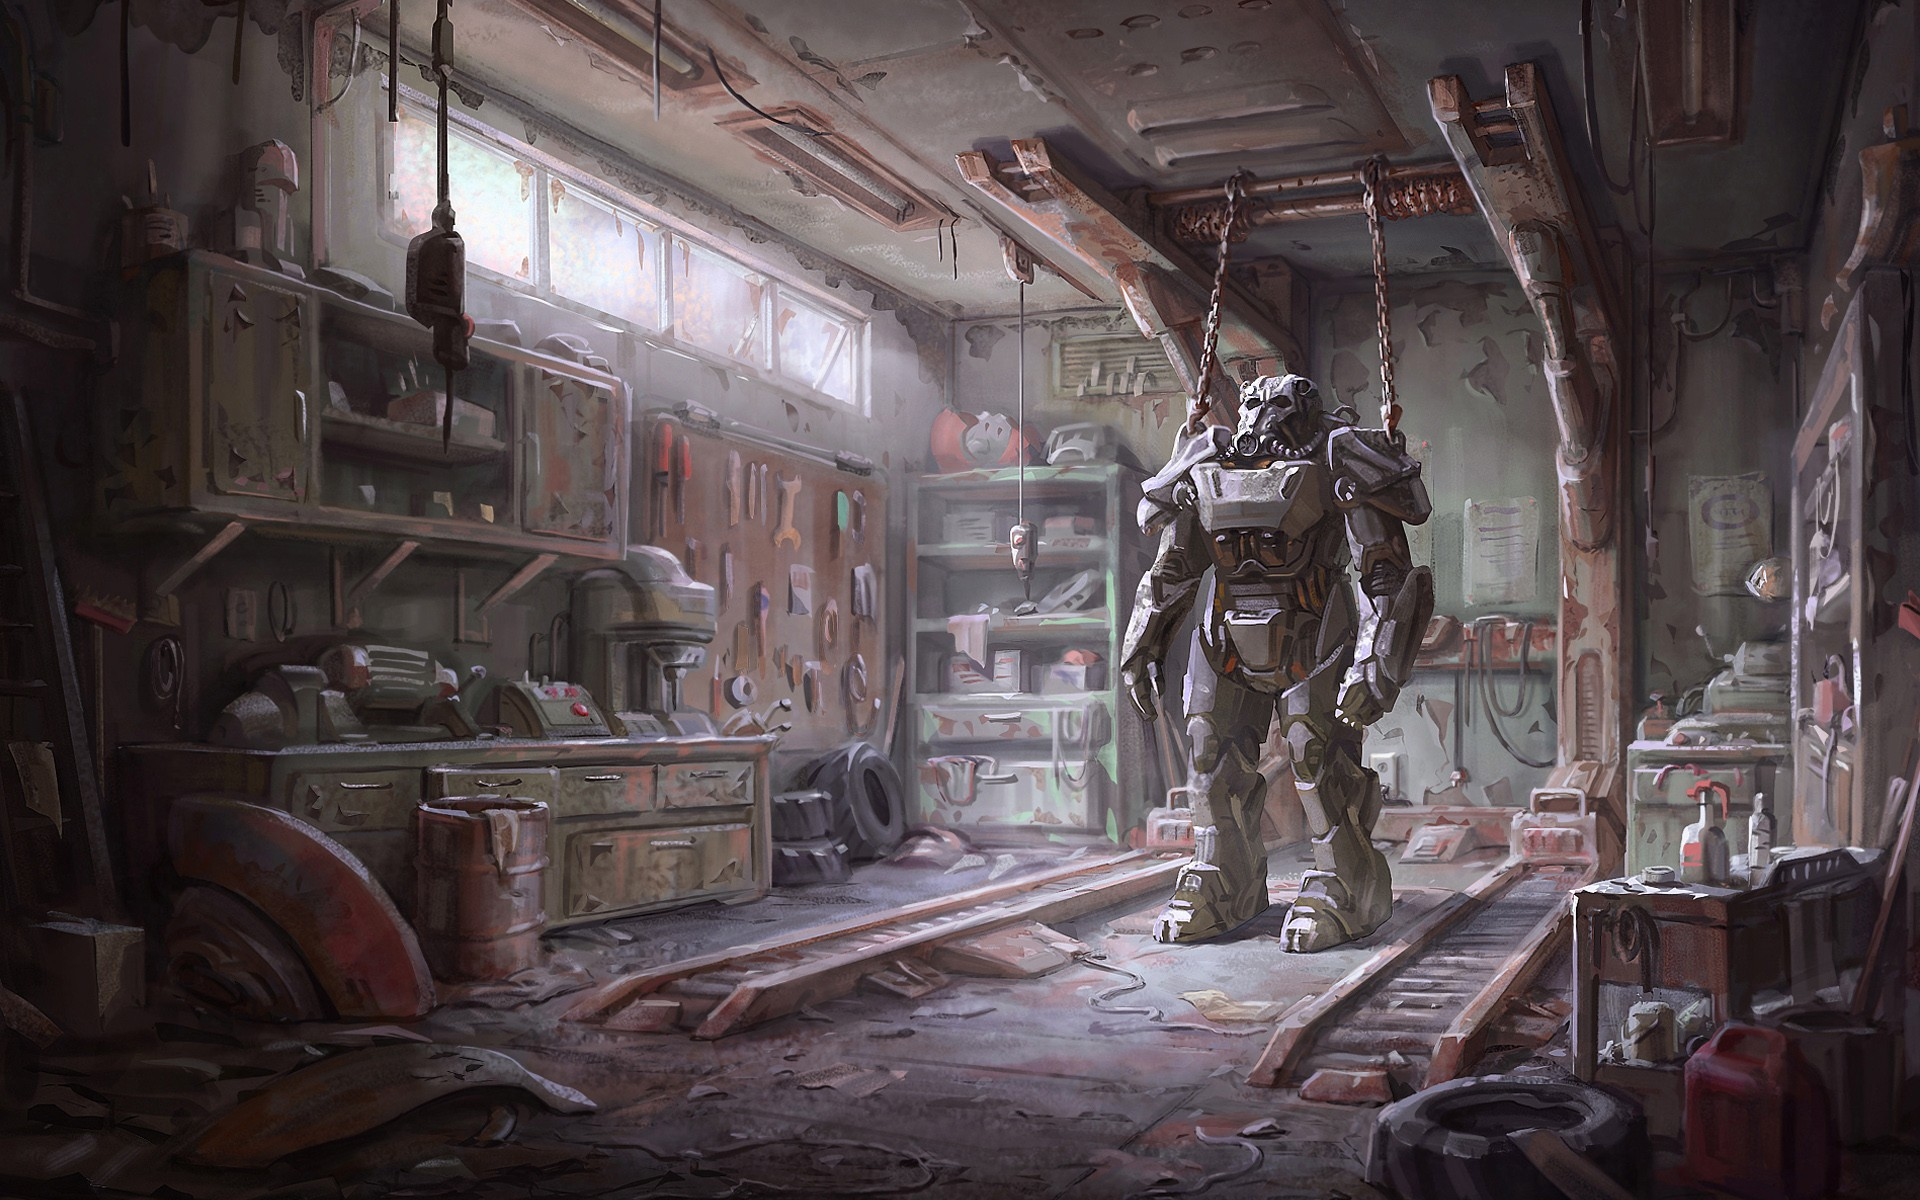 Desktop Wallpaper Fall Out Fallout 4 Armour Wallpapers Hd Wallpapers Id 14864